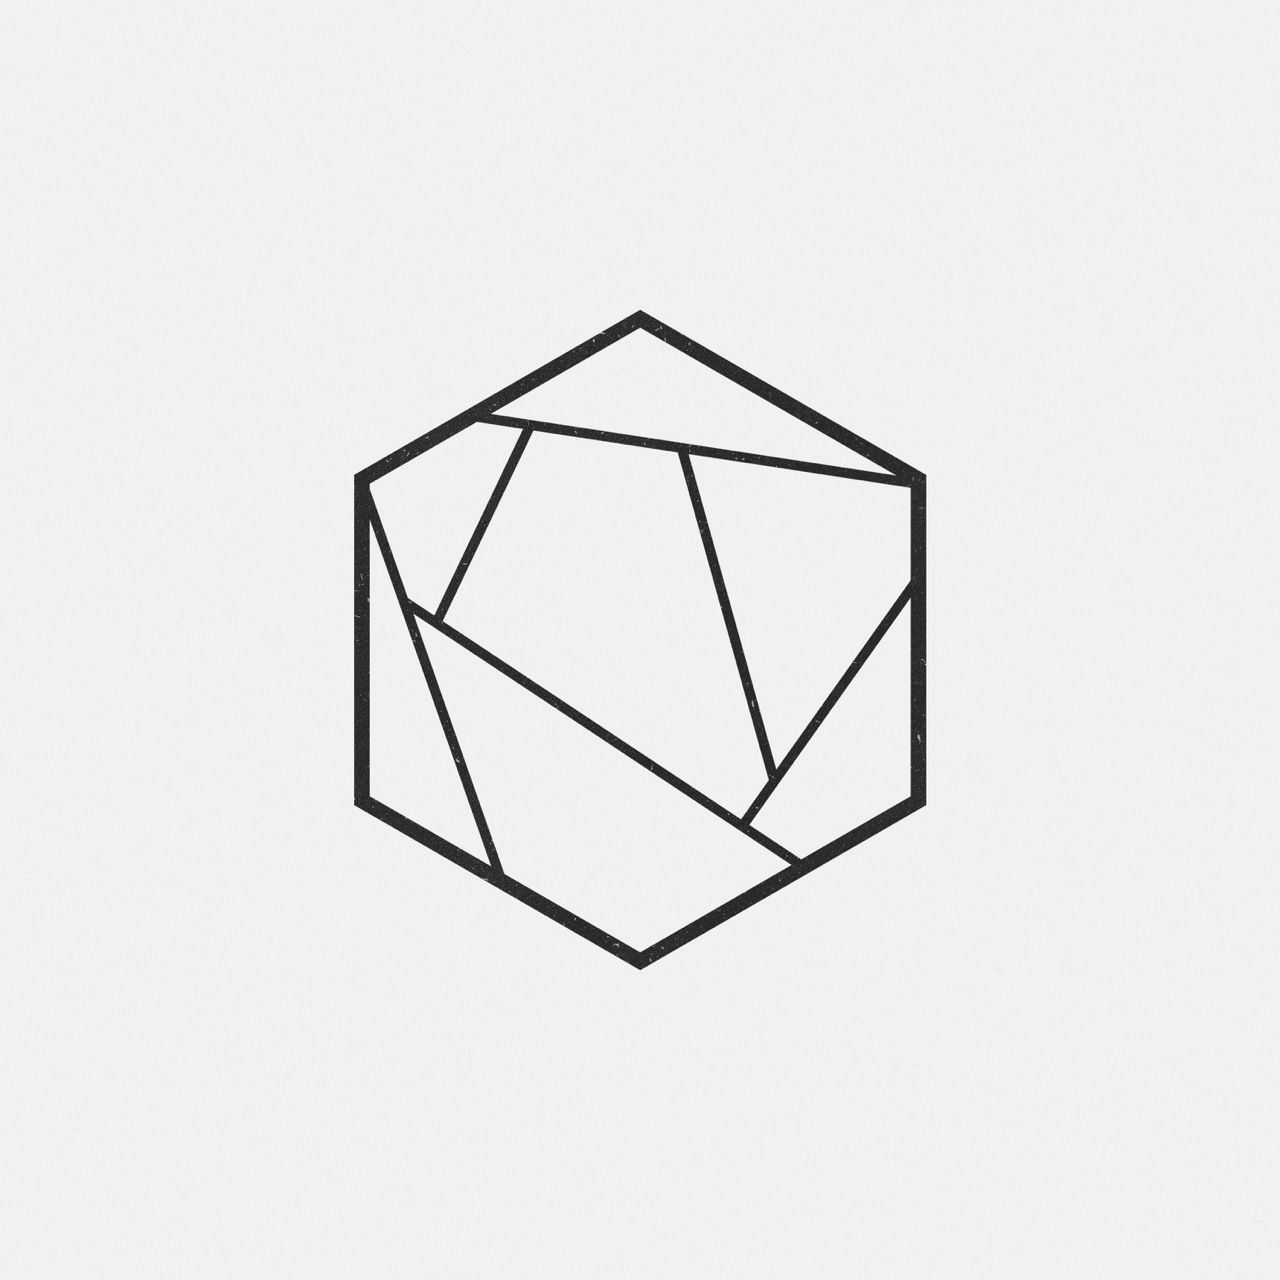 Geometric Design for Beginners - Envato Tuts  Design ...